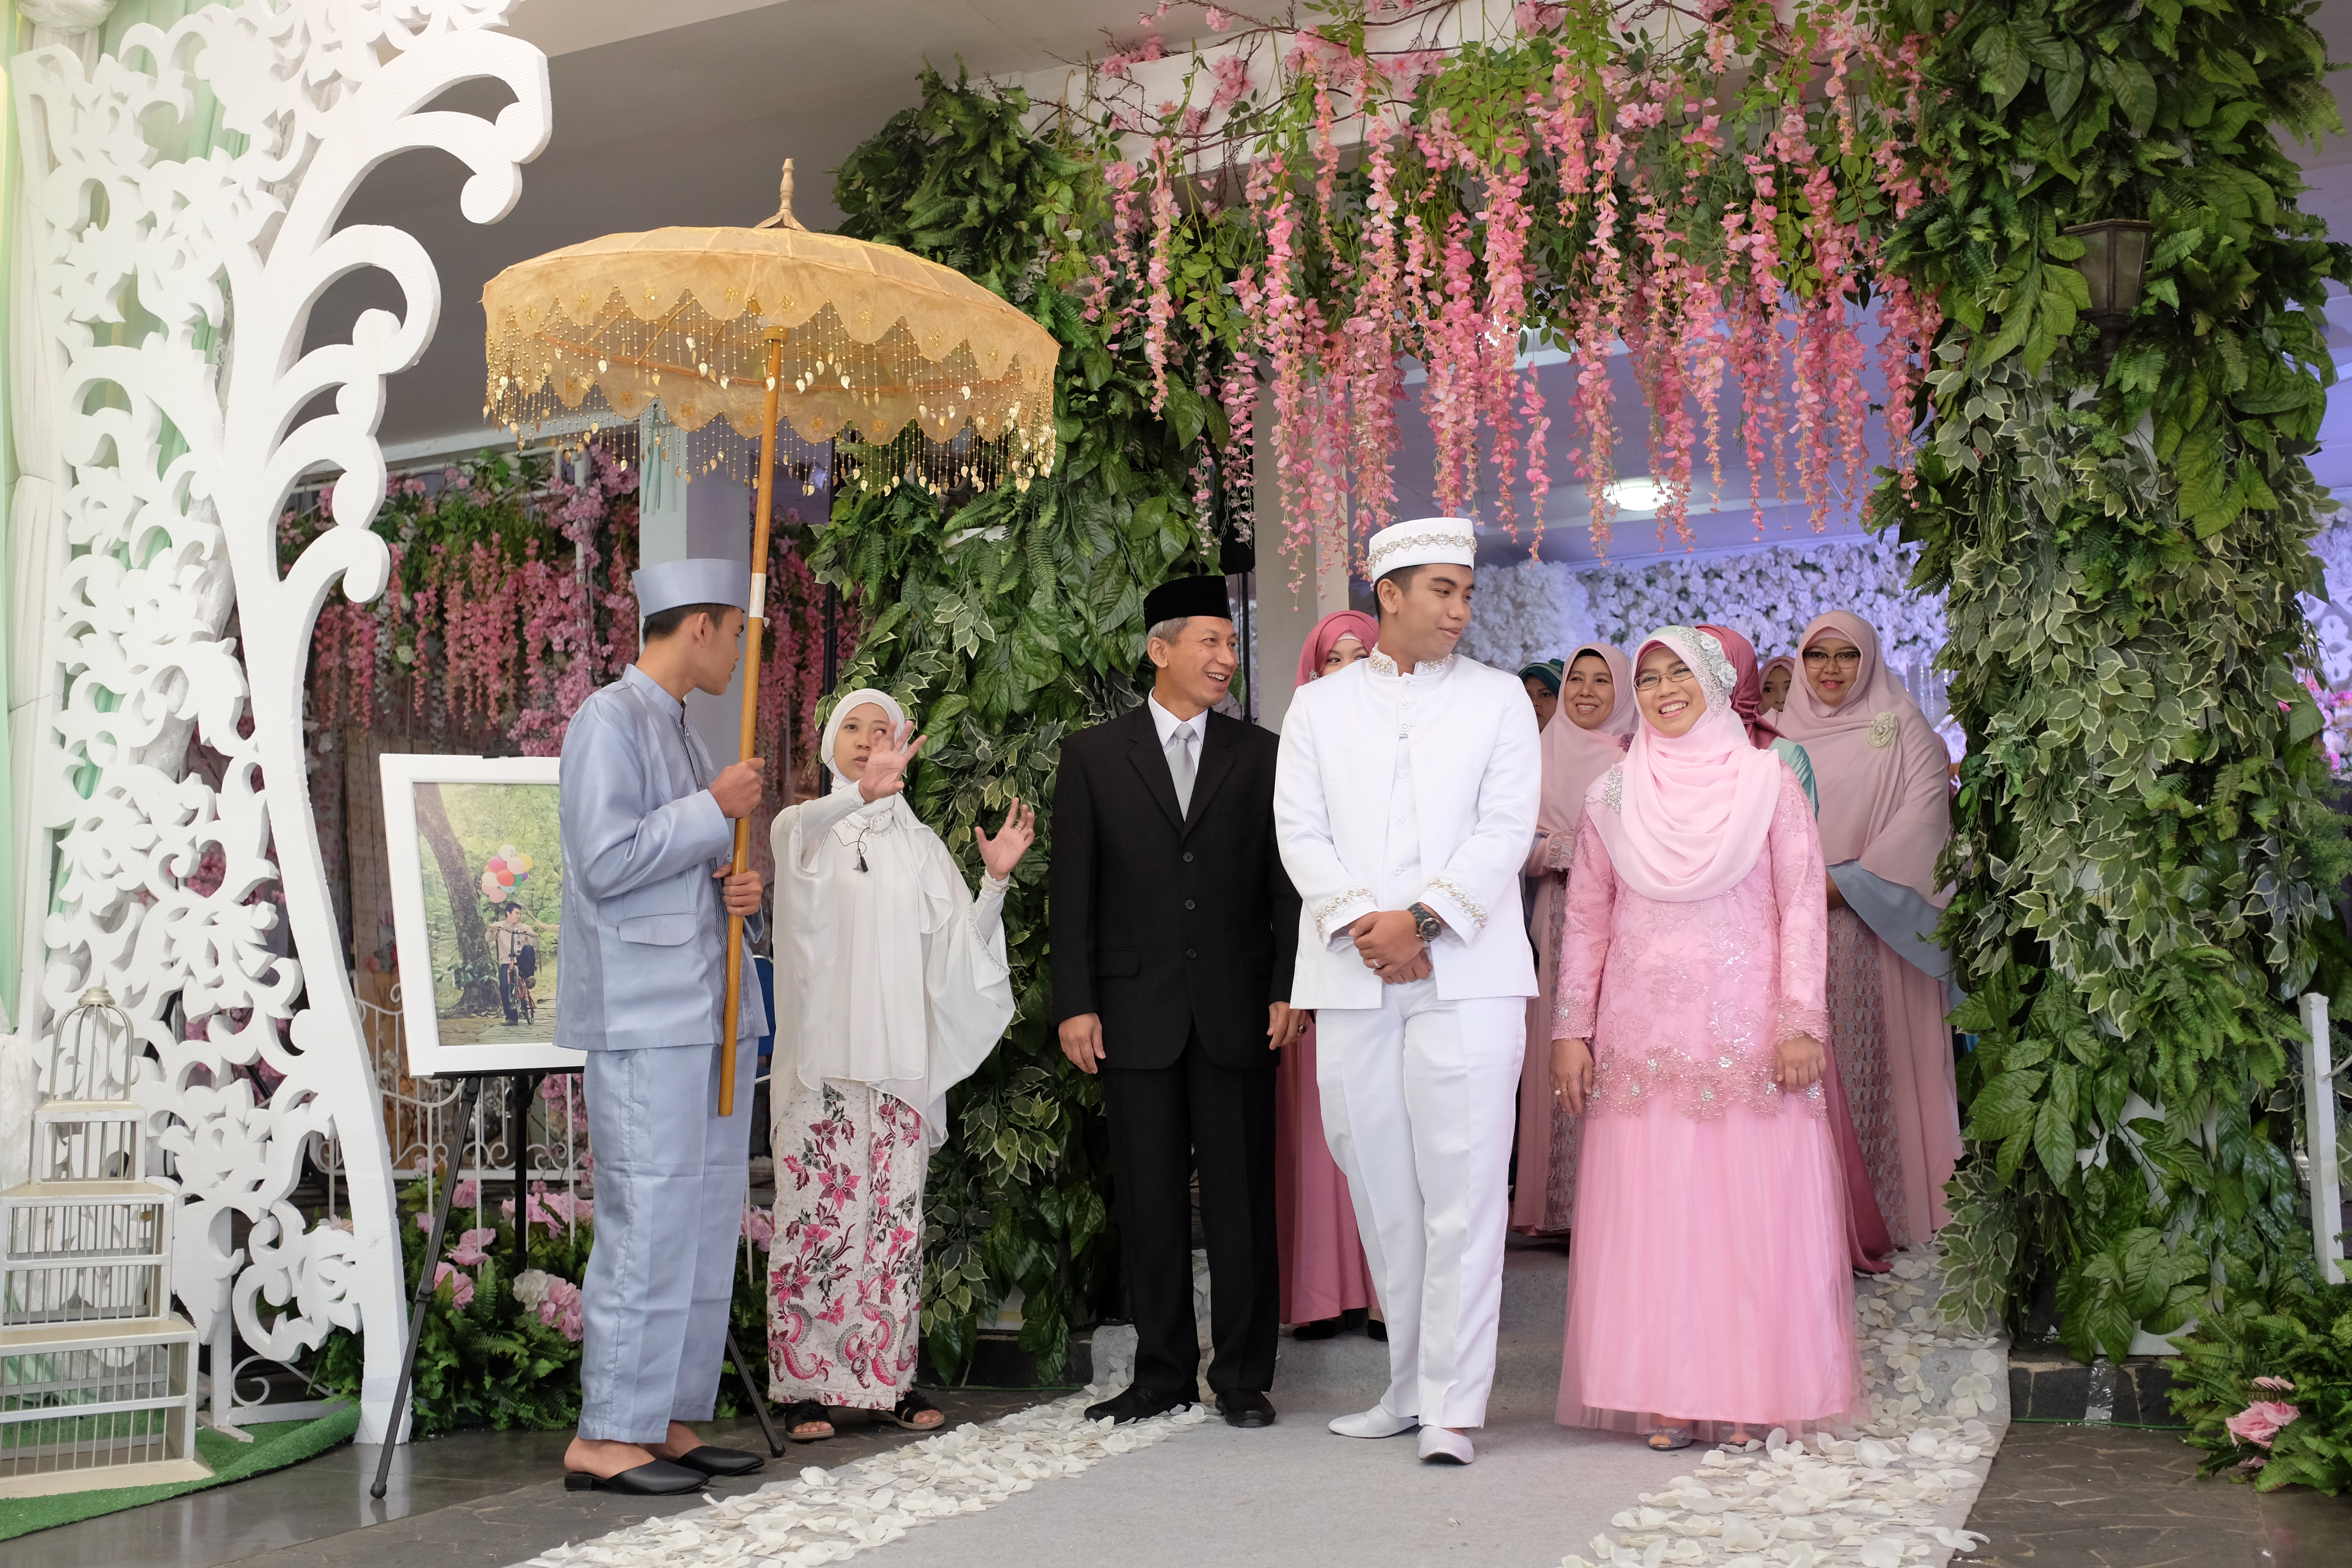 Harga wedding decoration bandung images wedding dress vendor wedding decoration bandung gallery wedding dress daf wedding decoration bandung images wedding dress decoration wedding junglespirit Images